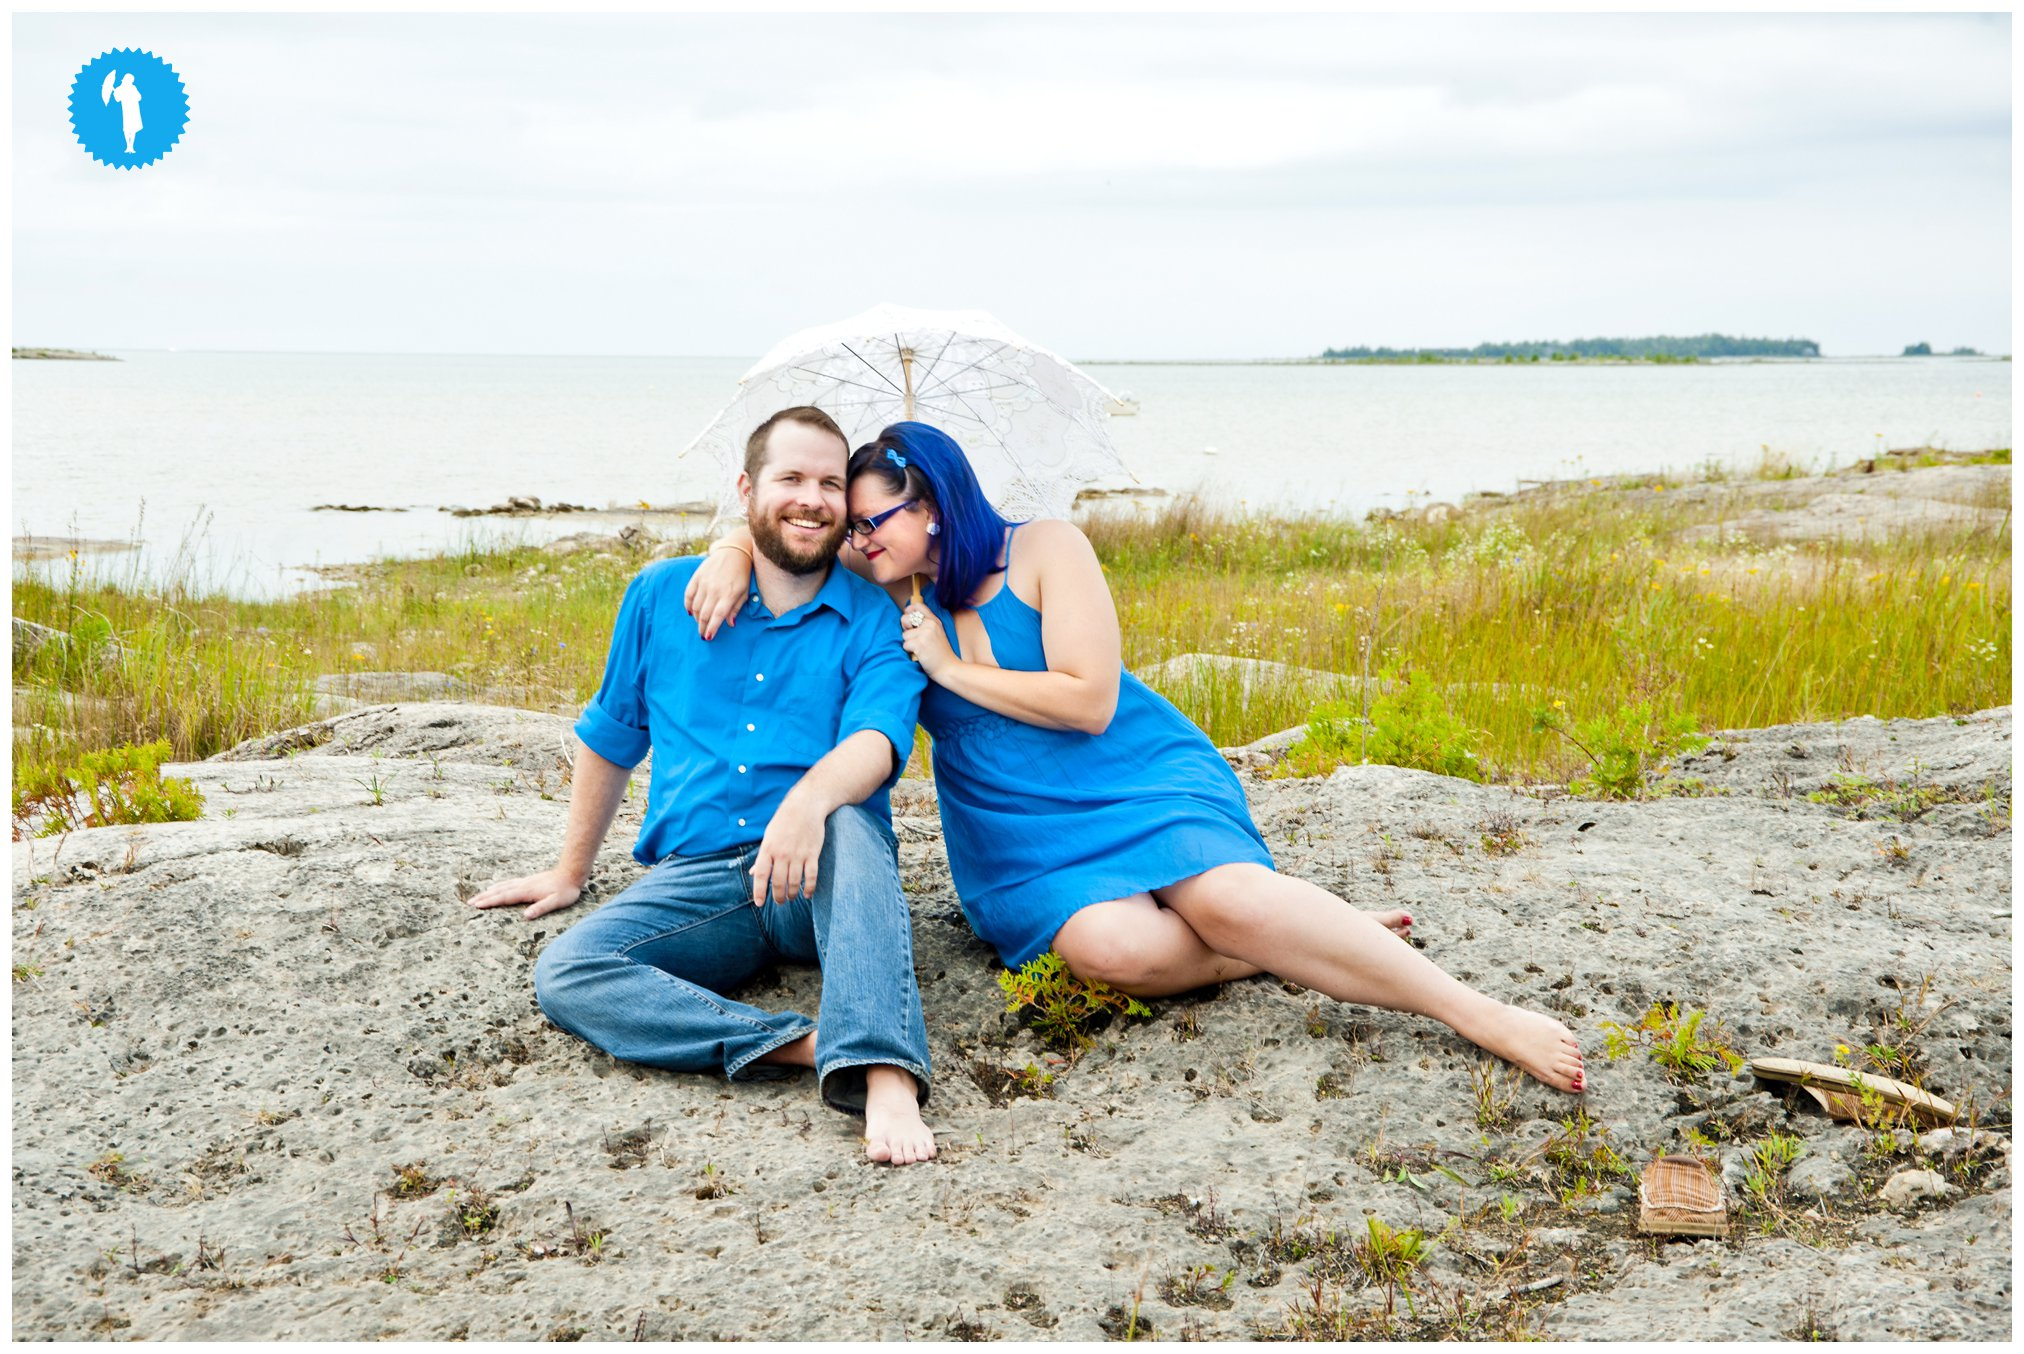 Couple's portrait, summer 2013.